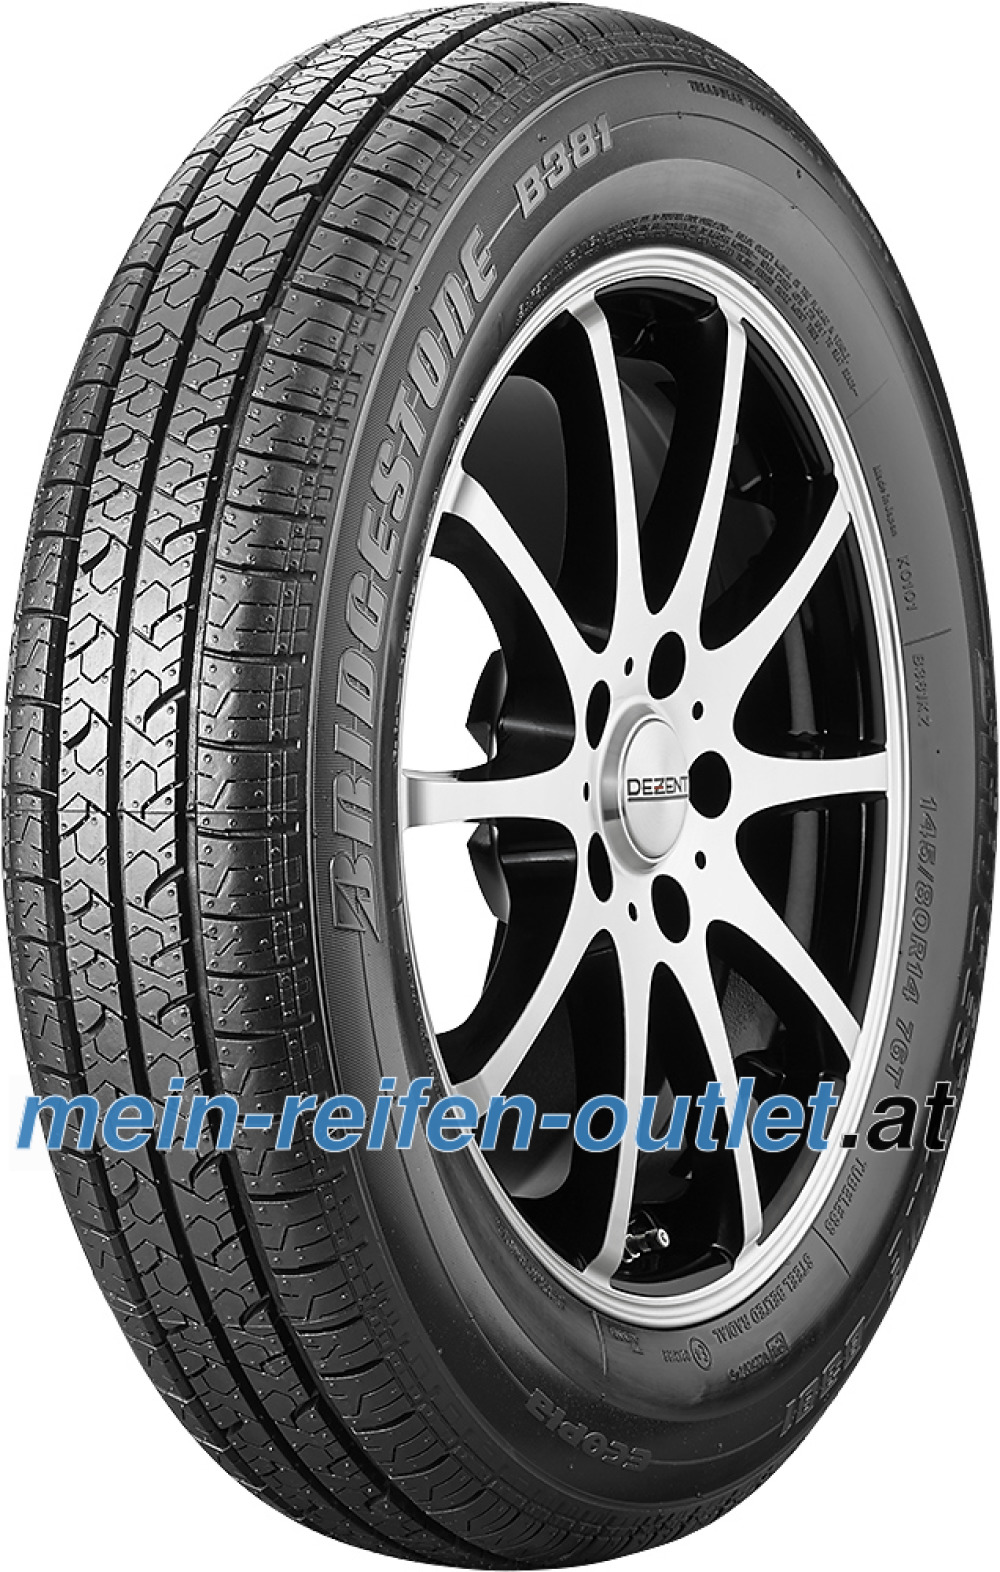 Bridgestone B 381 ( 145/80 R14 76T WW 40mm )